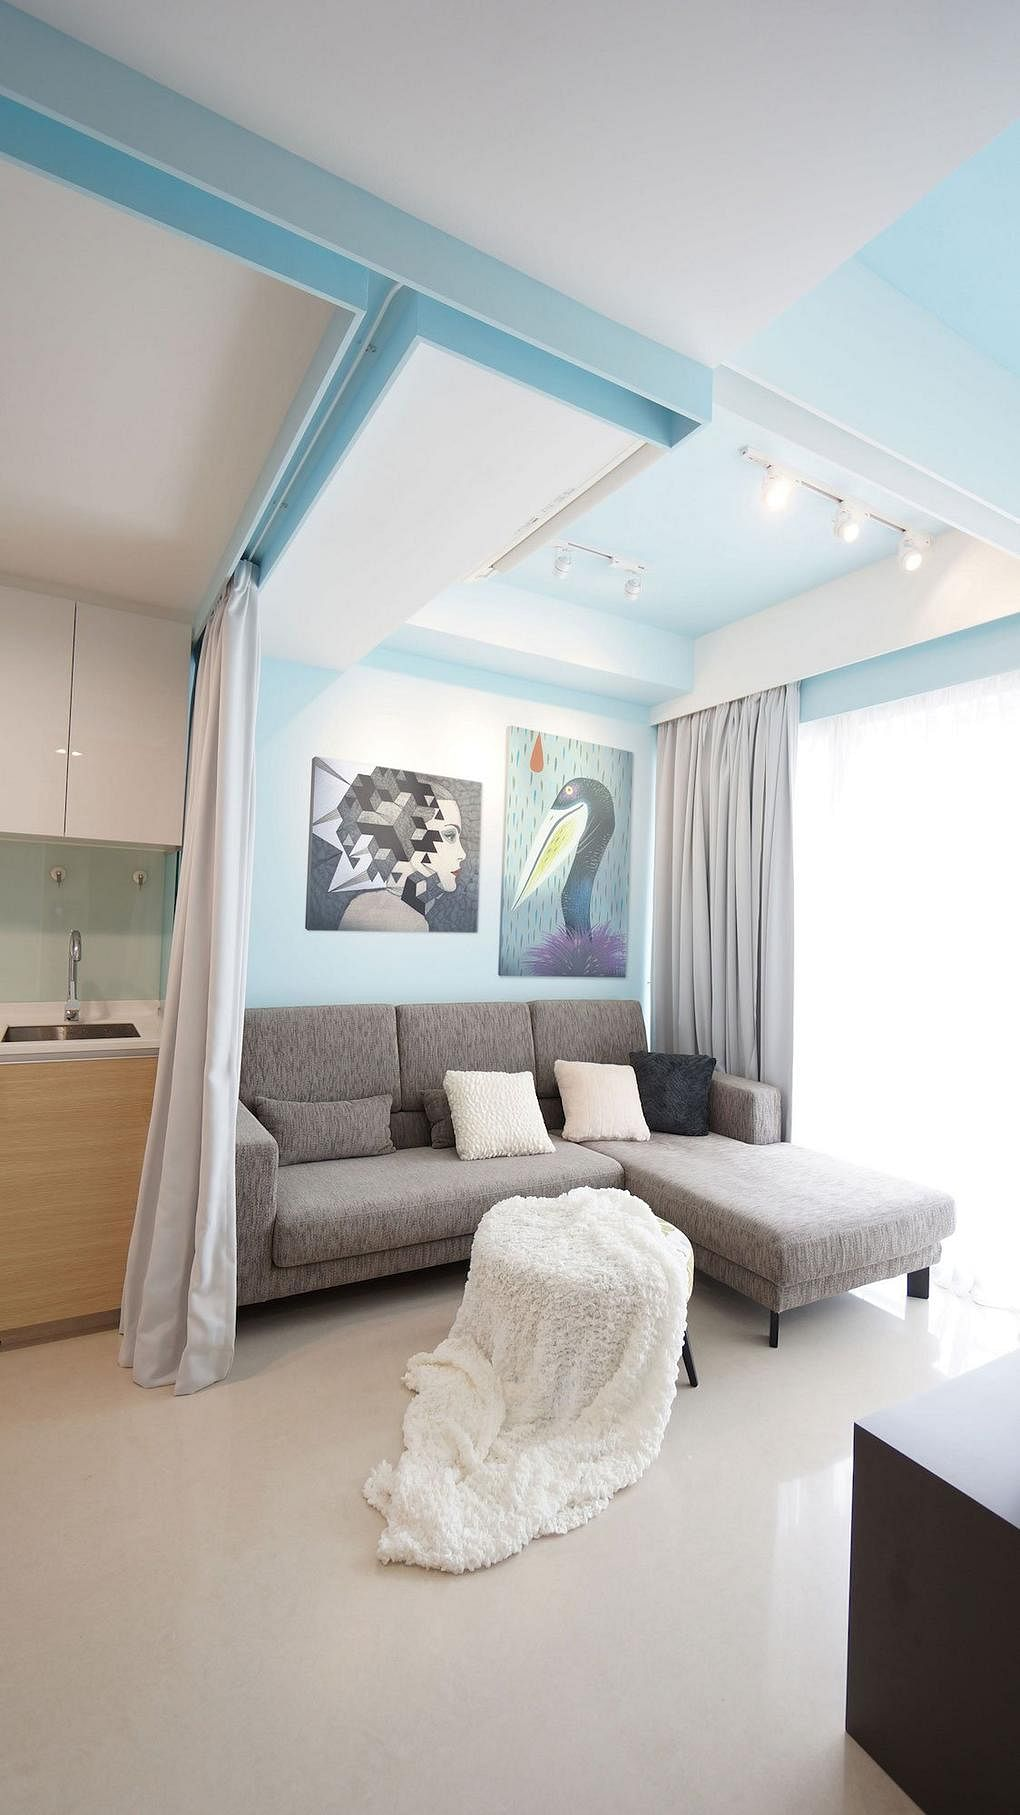 House Tour Clever Use Of Space In Singapore Shoebox Apartment By